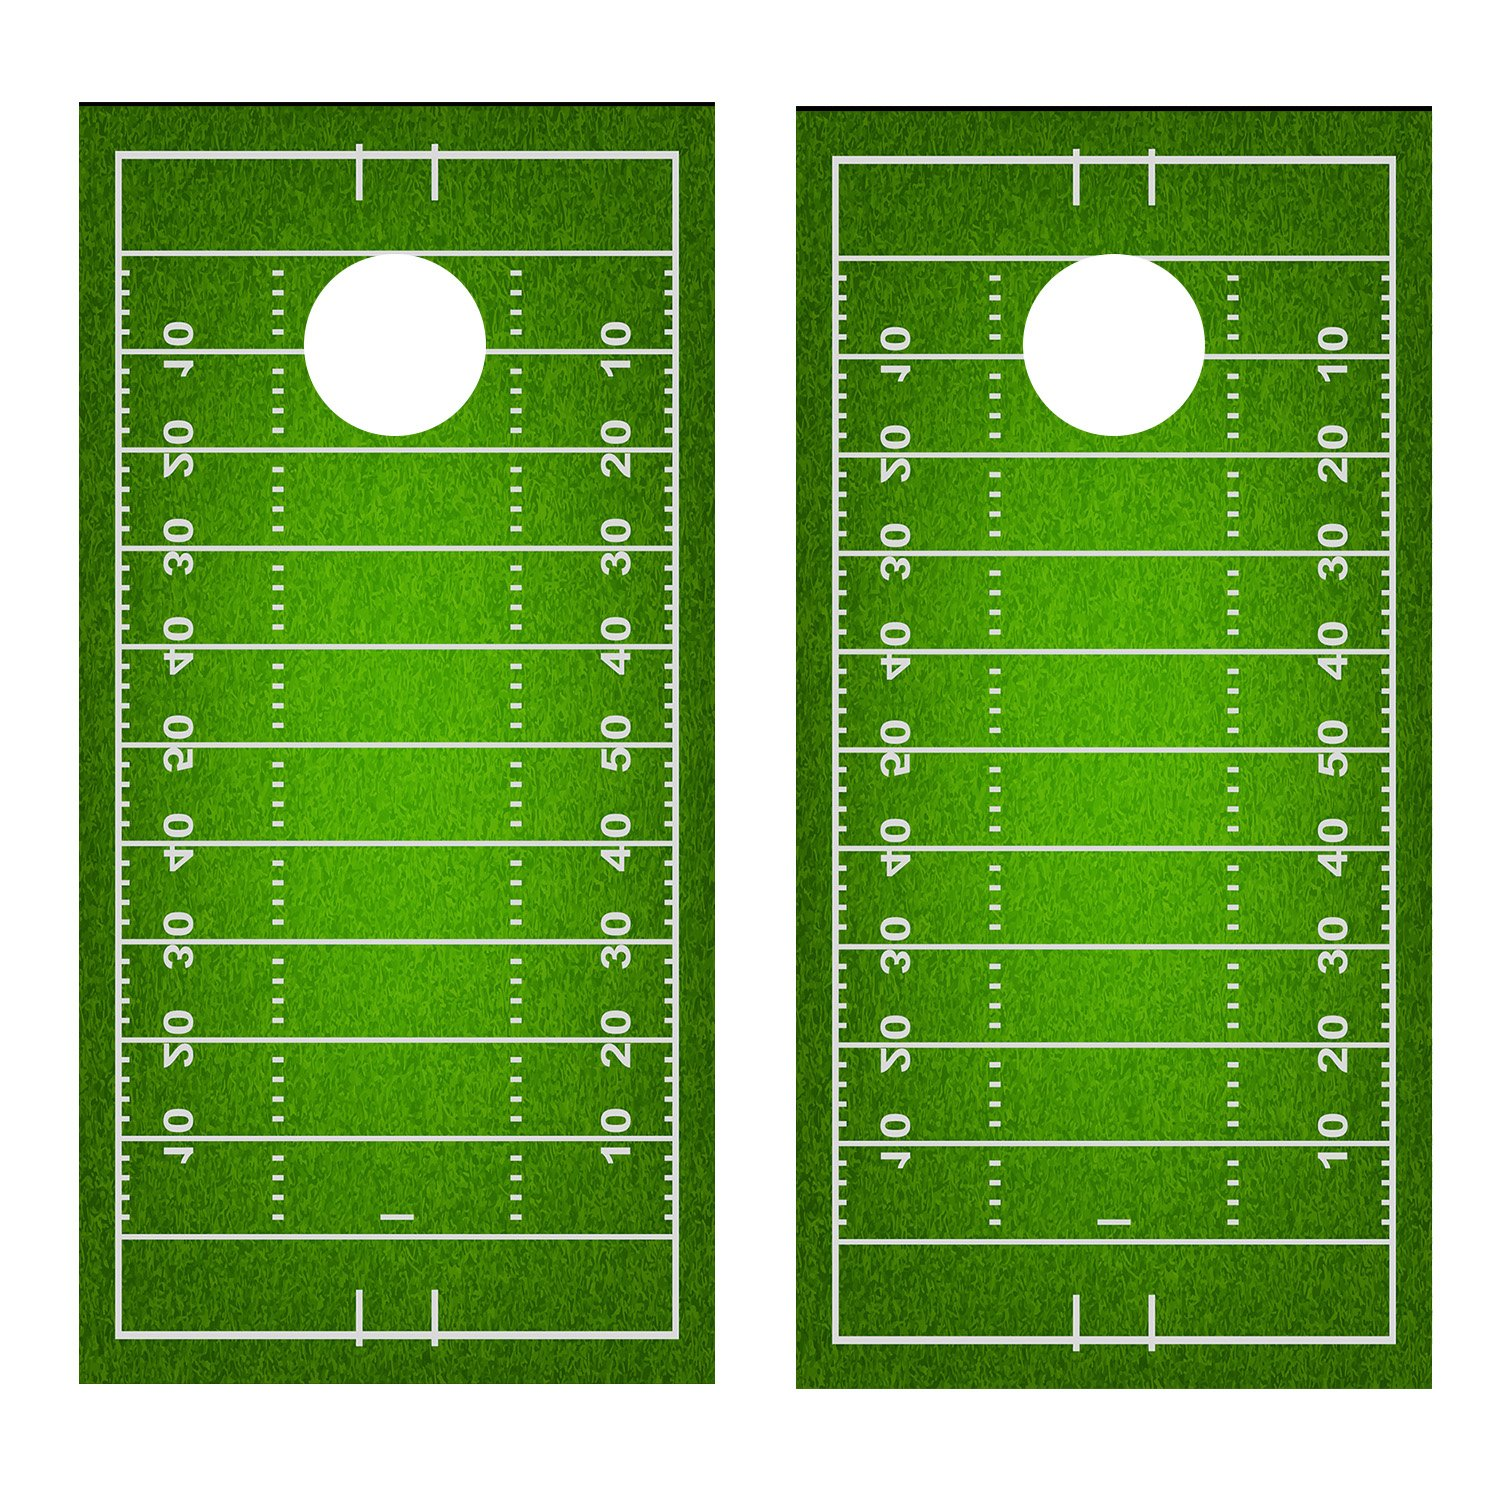 Football Field CORNHOLE DECAL WRAP SET Decals Board Boards Vinyl Sticker Stickers Bean Bag Game Wraps Vinyl Graphic Image Corn Hole (Laminated) by Lets Print Big (Image #1)